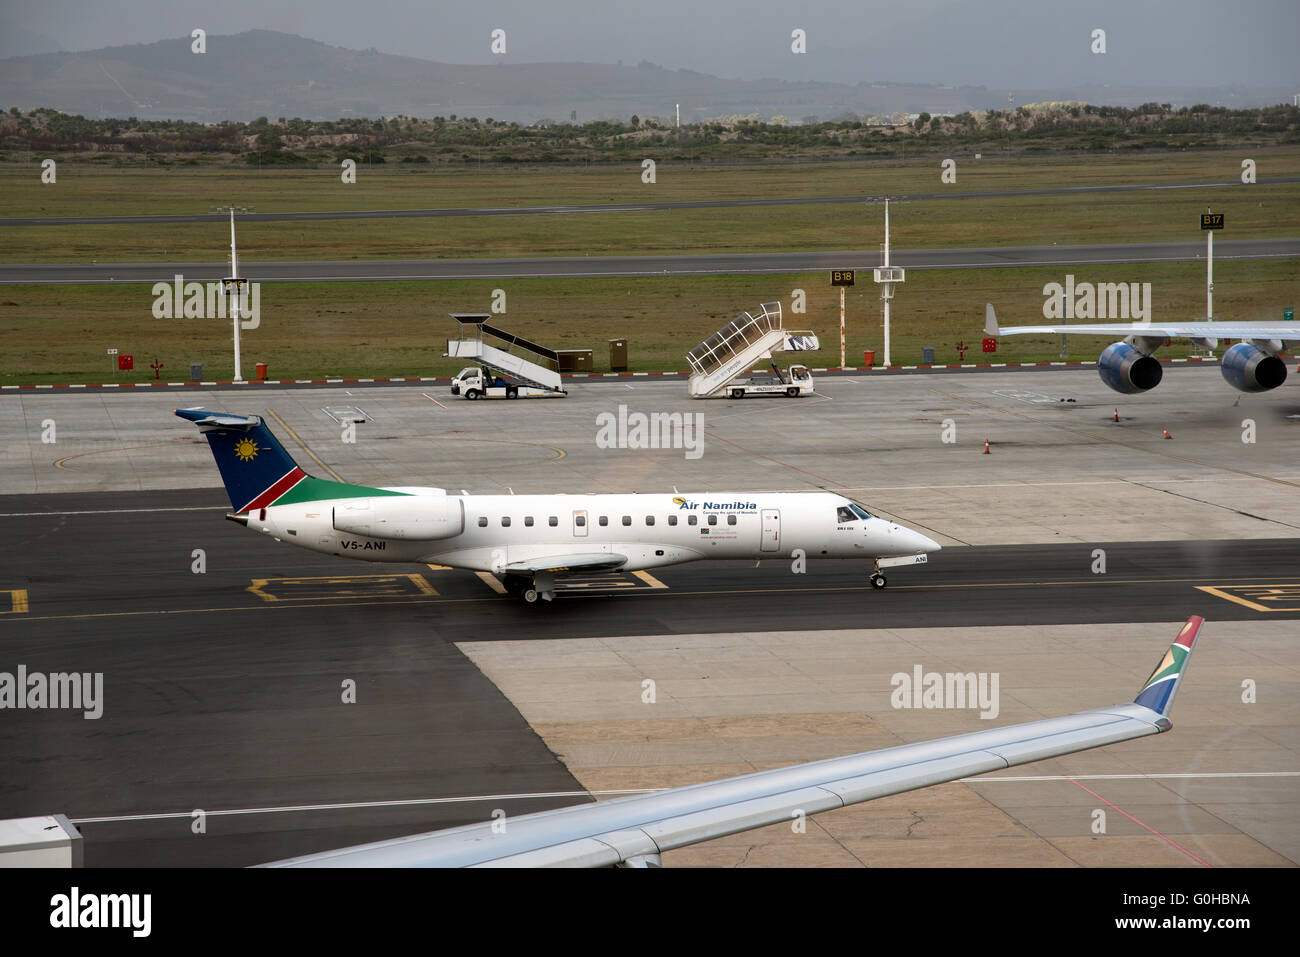 CAPE TOWN INTERNATIONAL AIRPORT SOUTH  AFRICA  An Air Namibian Embraer ERJ 135 jet on taxiway - Stock Image